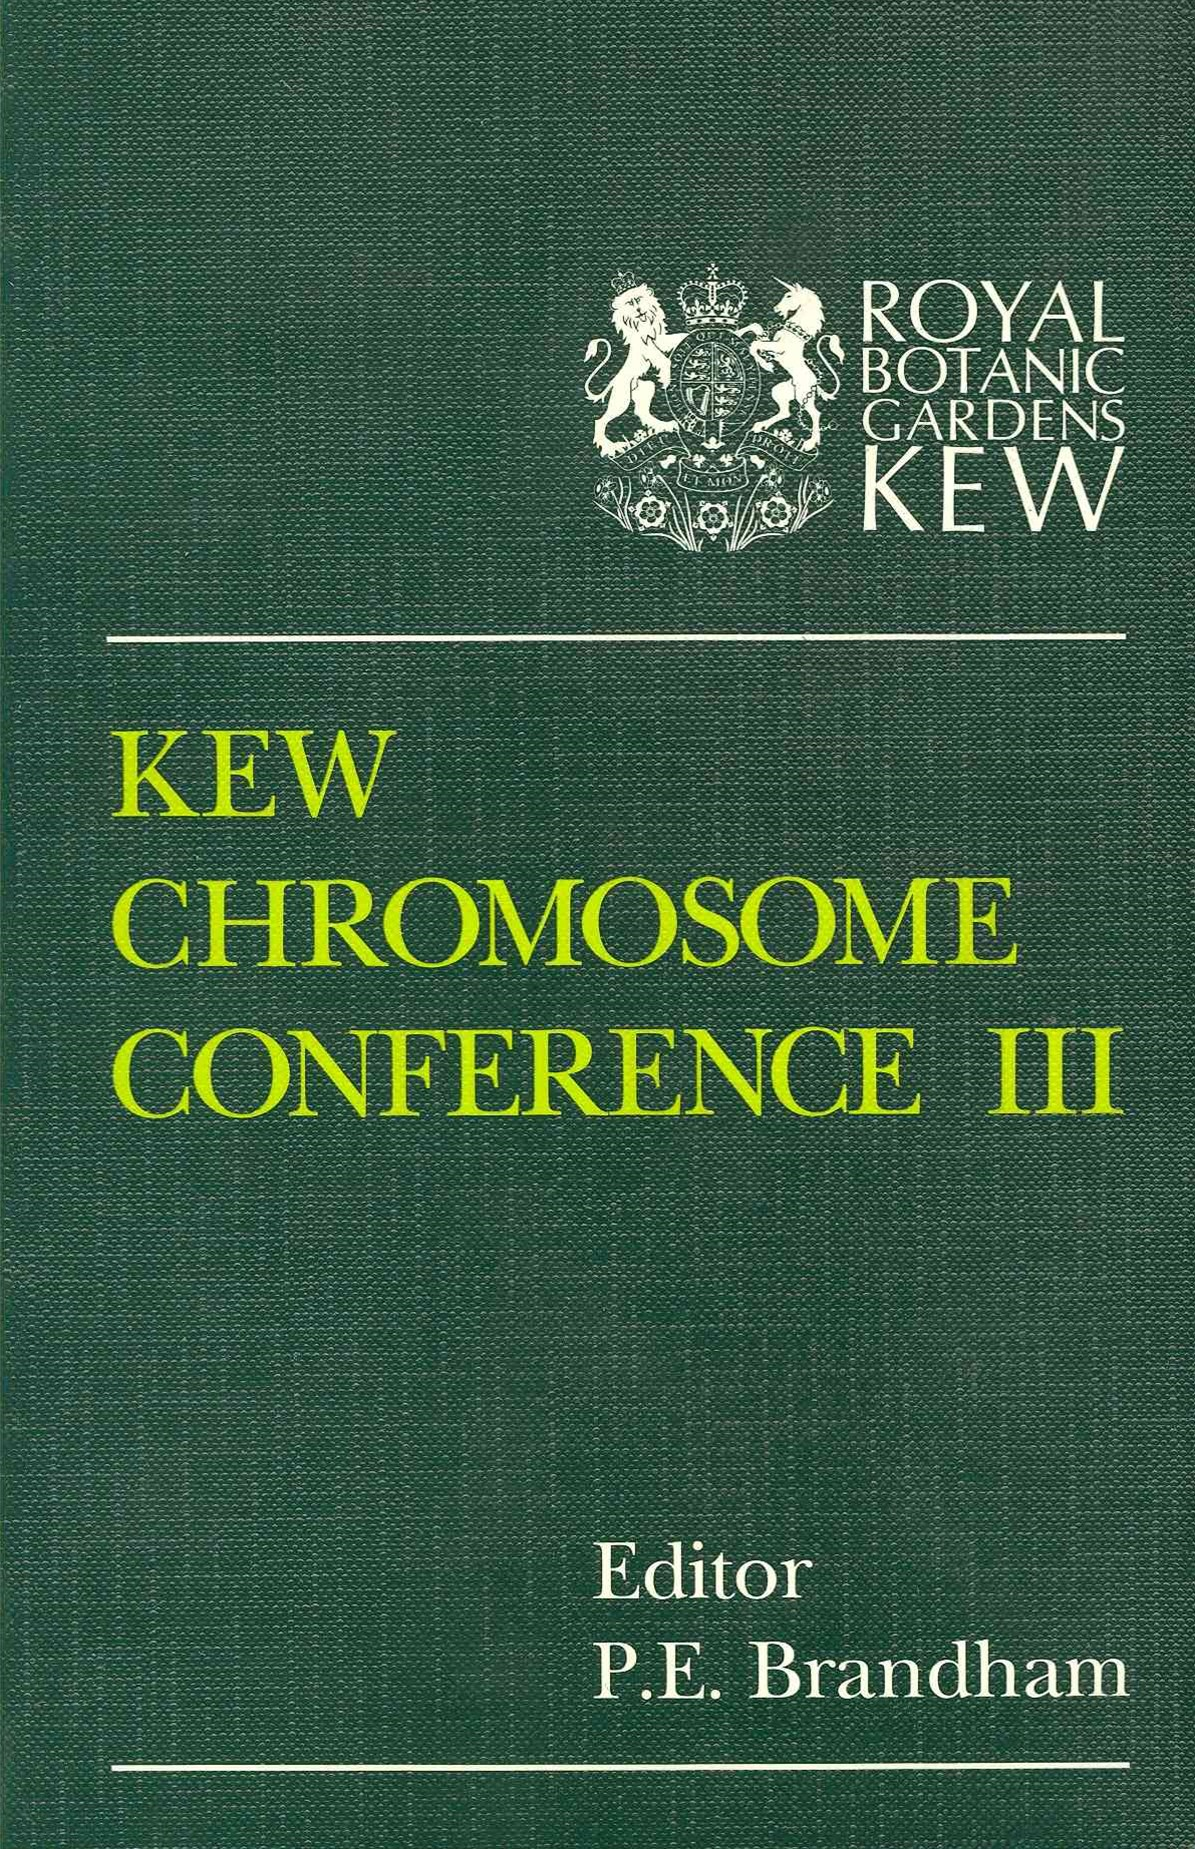 Kew Chromosome Conference III